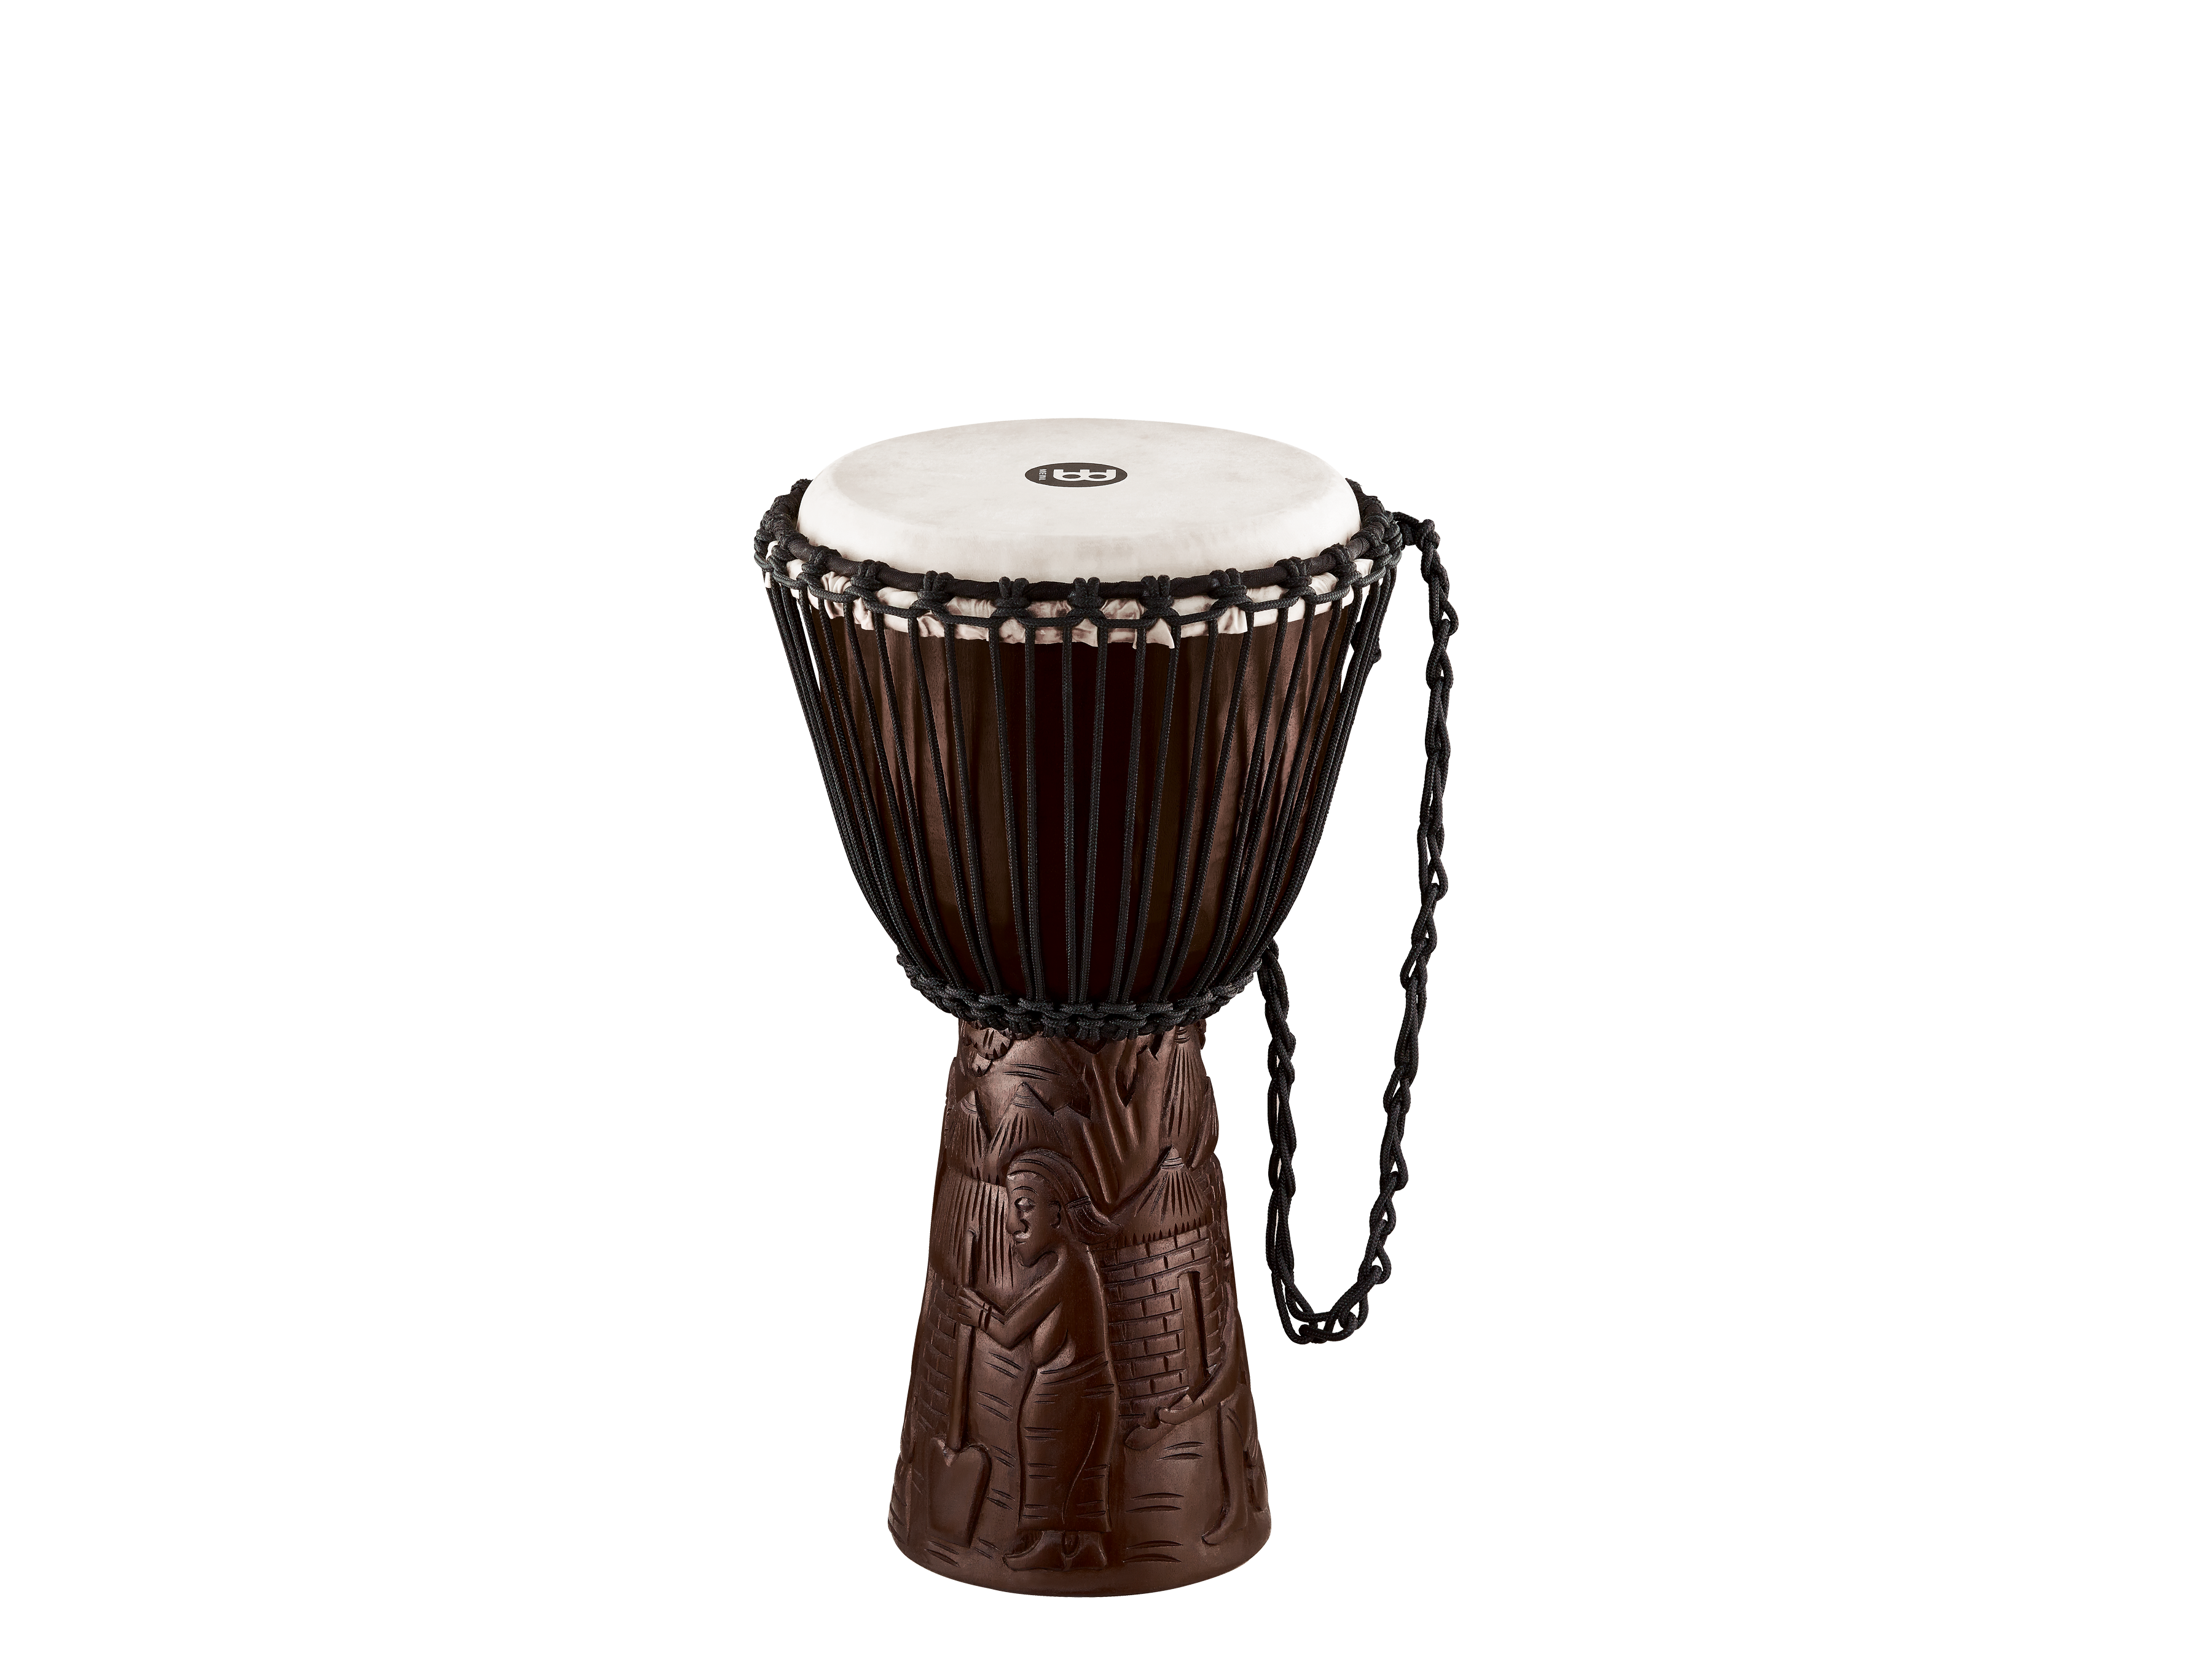 African drums png. Meinl percussion products professional